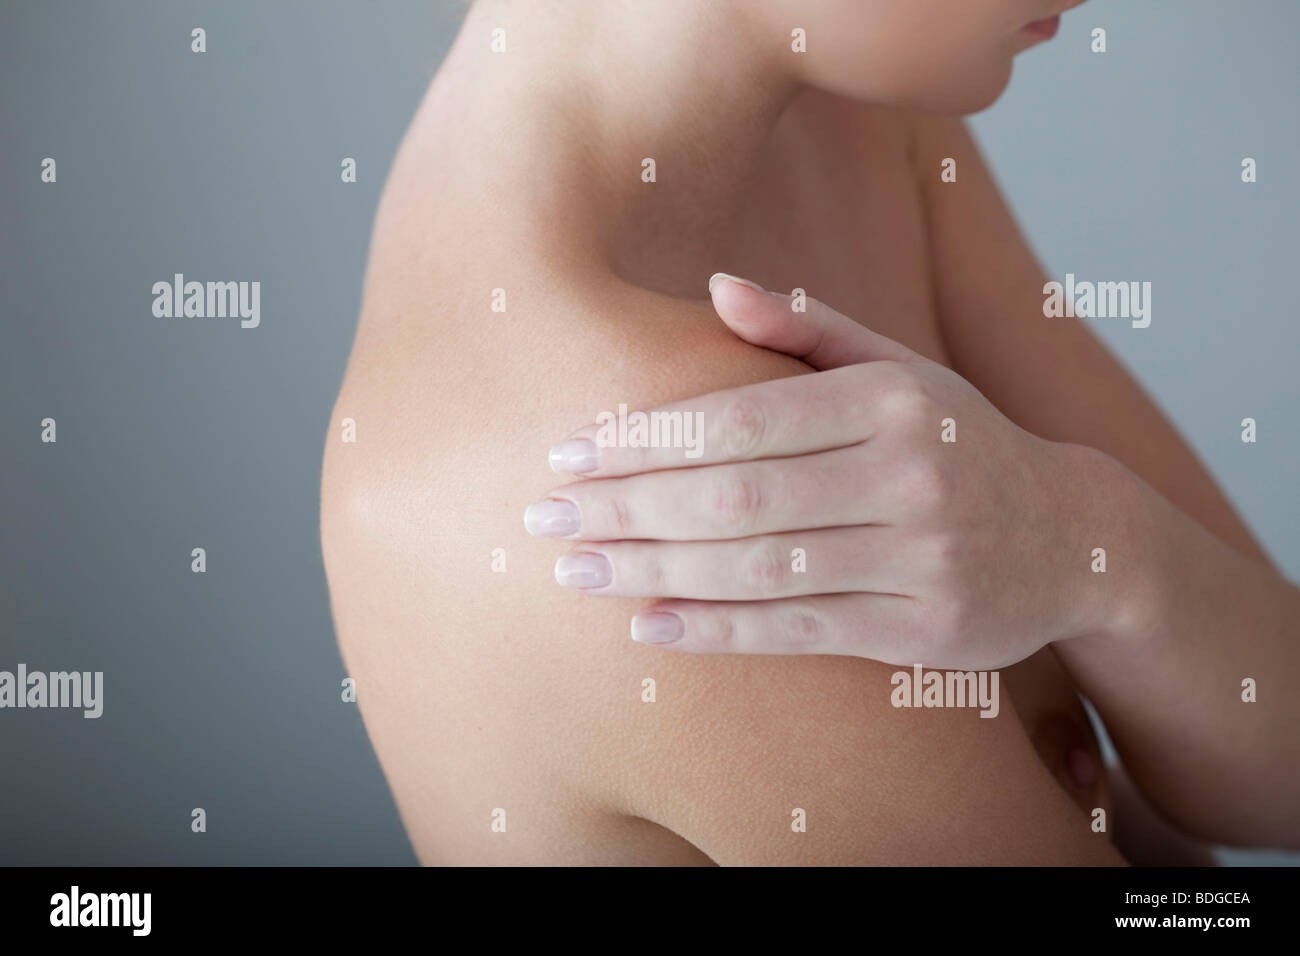 SHOULDER PAIN IN A WOMAN - Stock Image